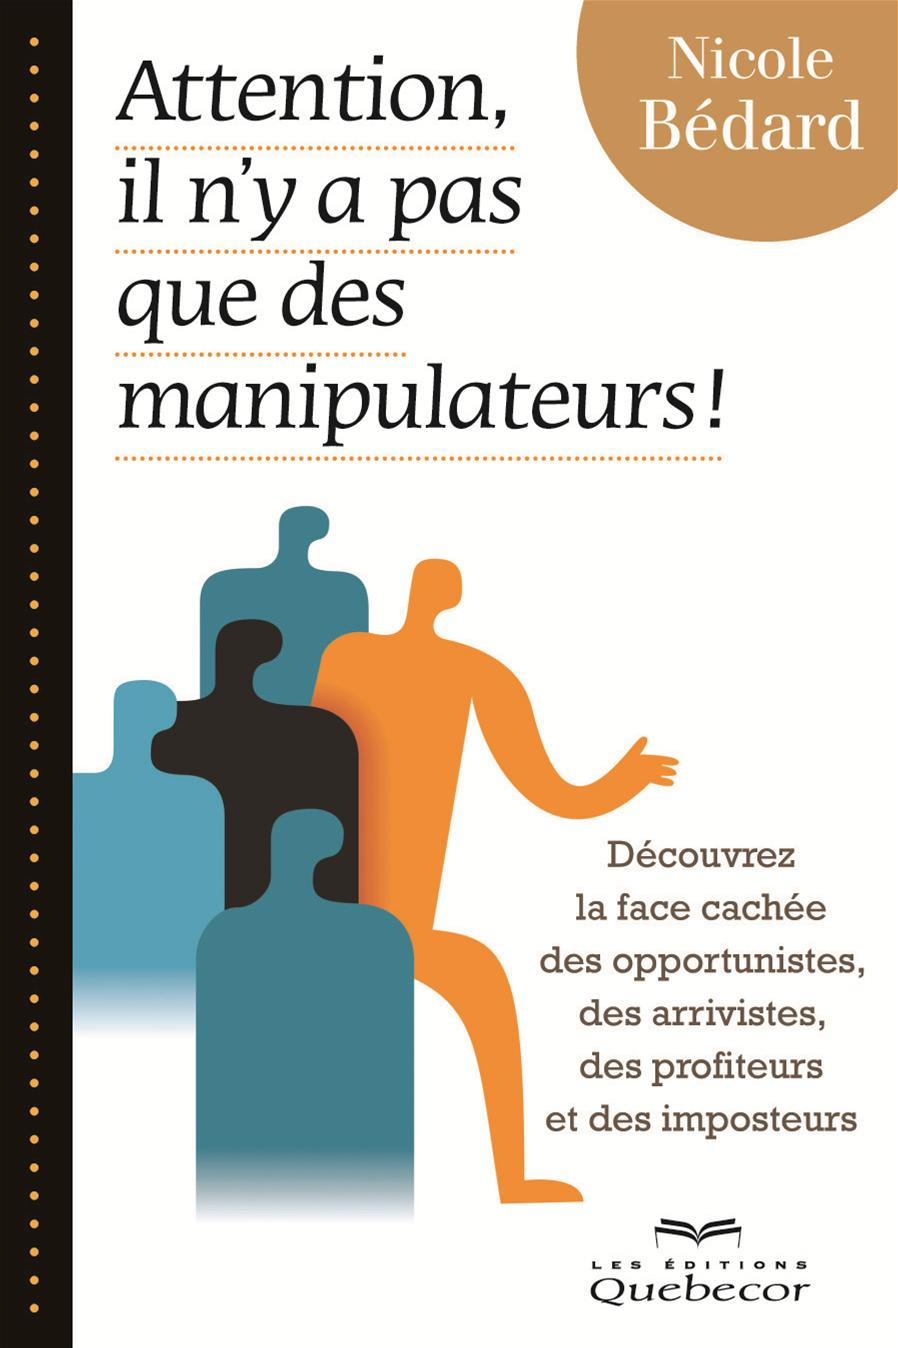 Attention, il n'y a pas que des manipulateurs!